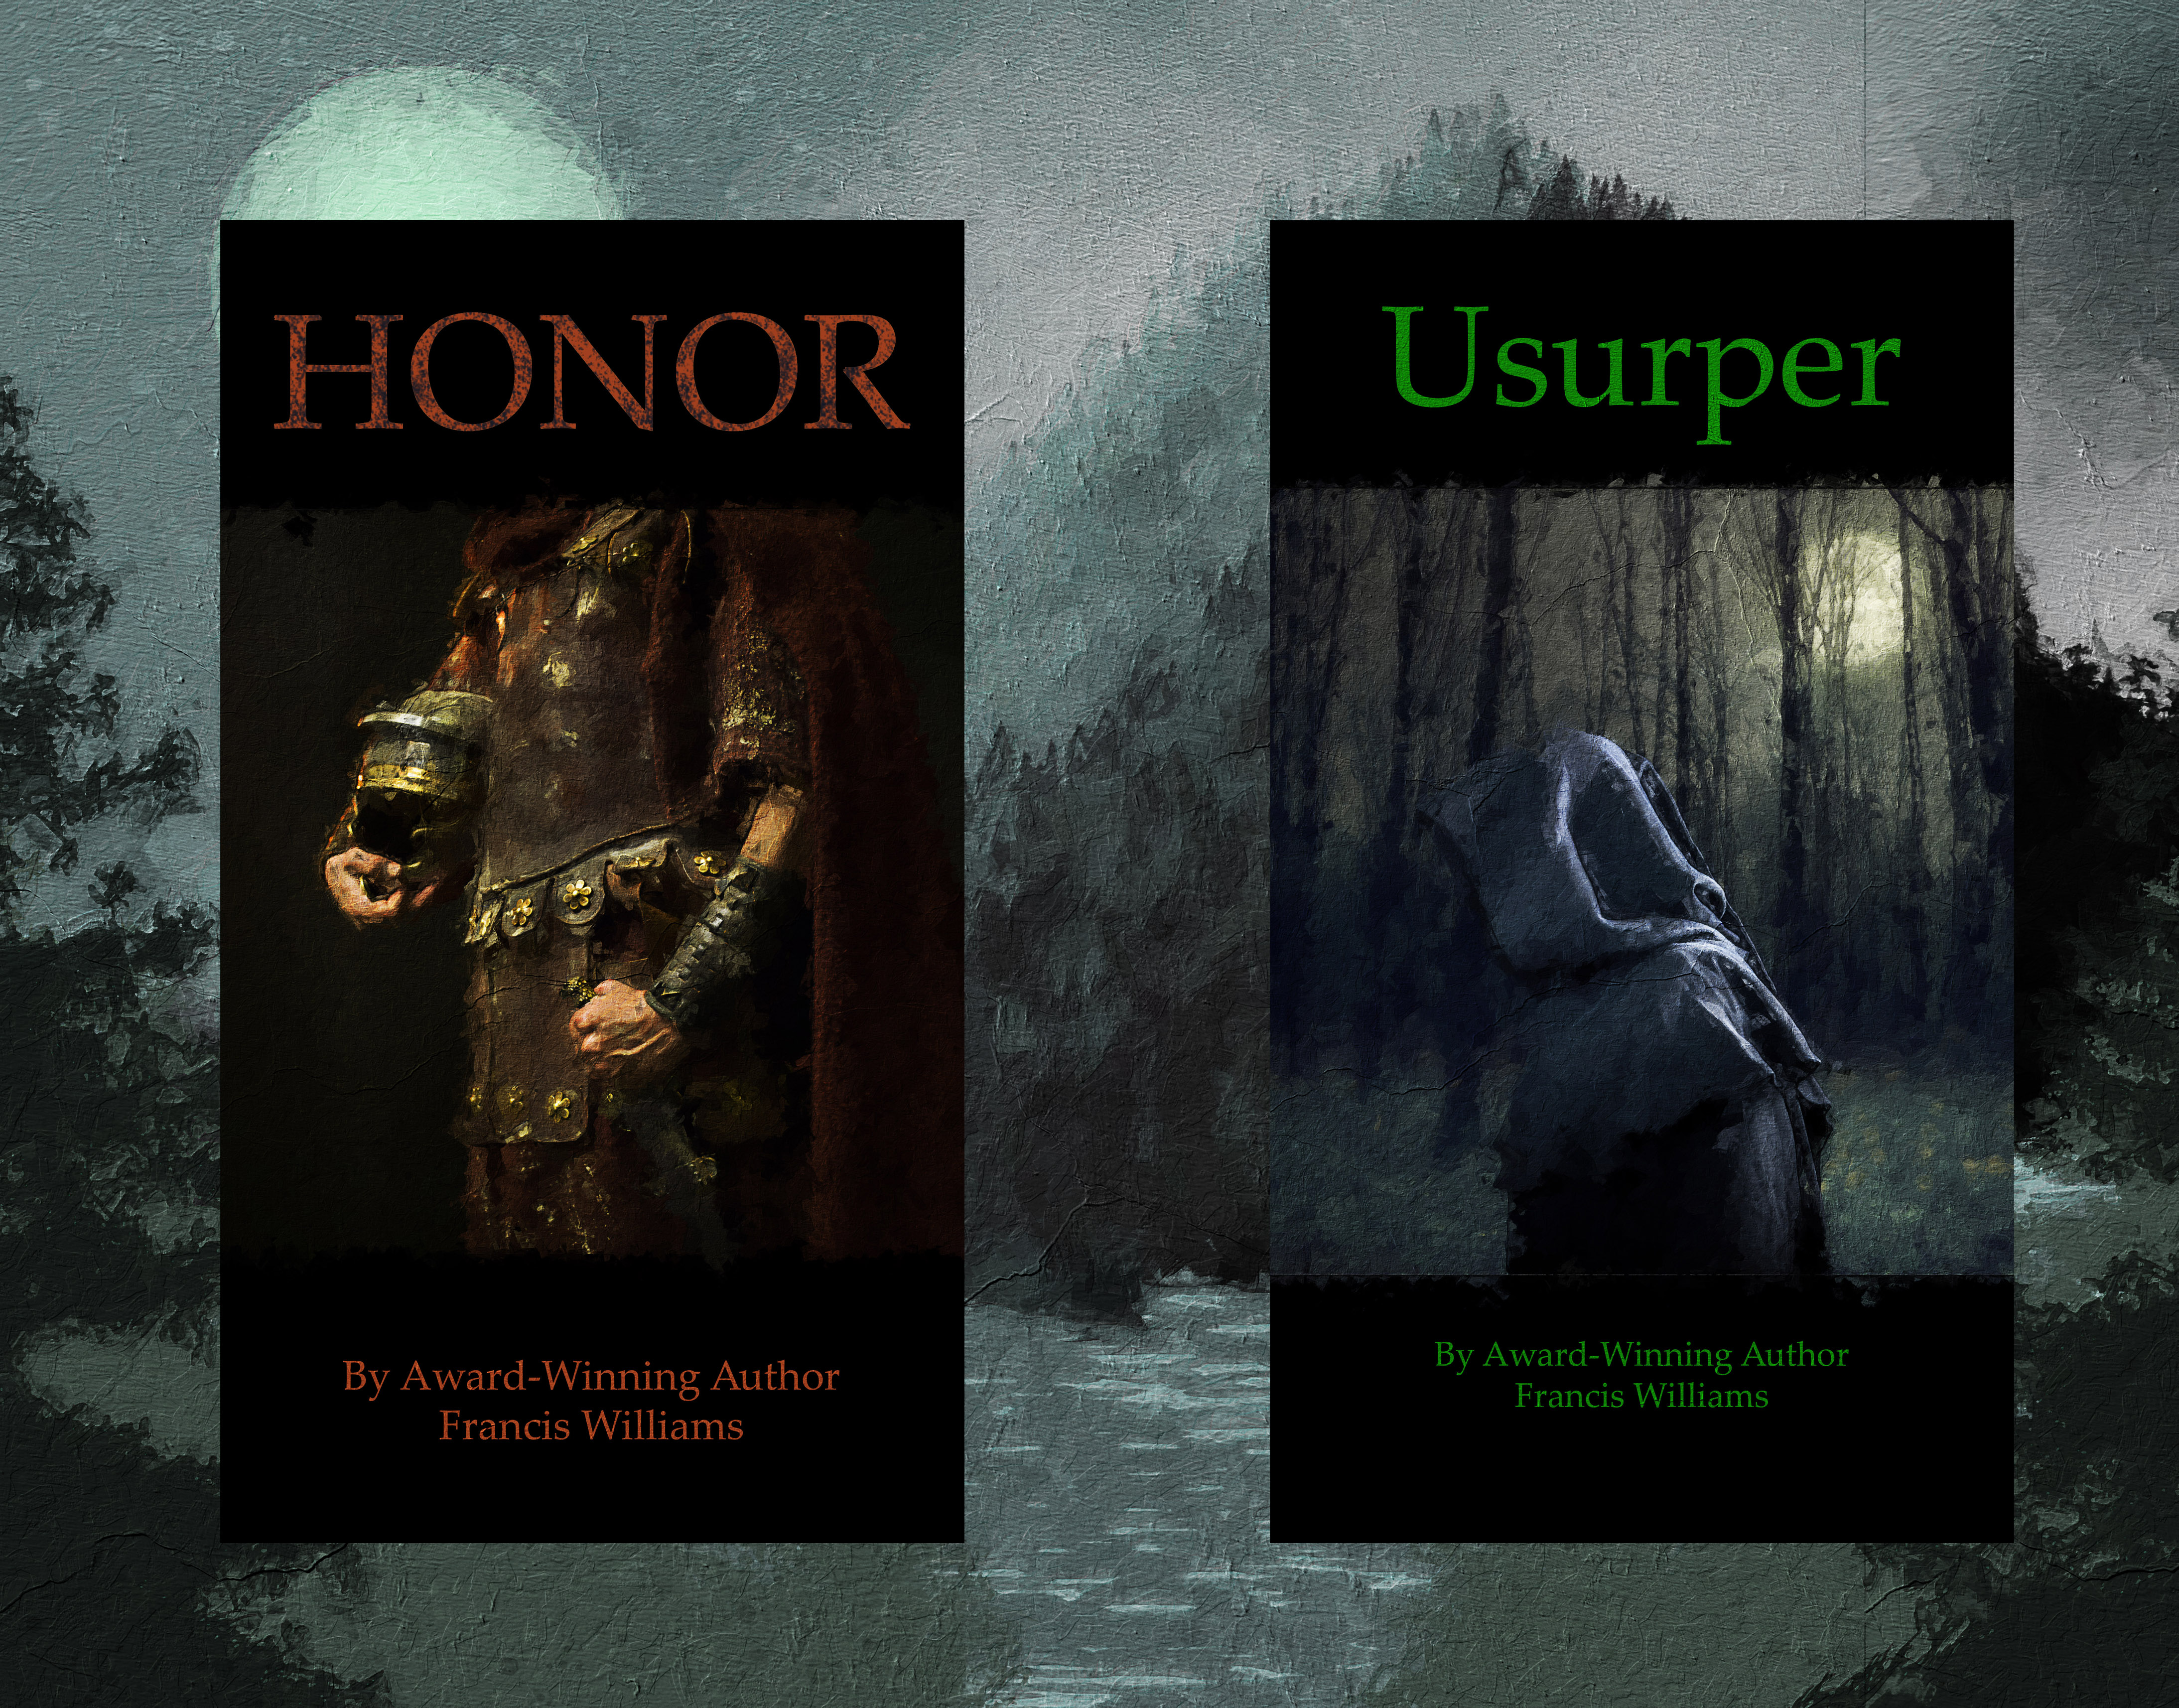 Francis Williams on HONOR and USURPER